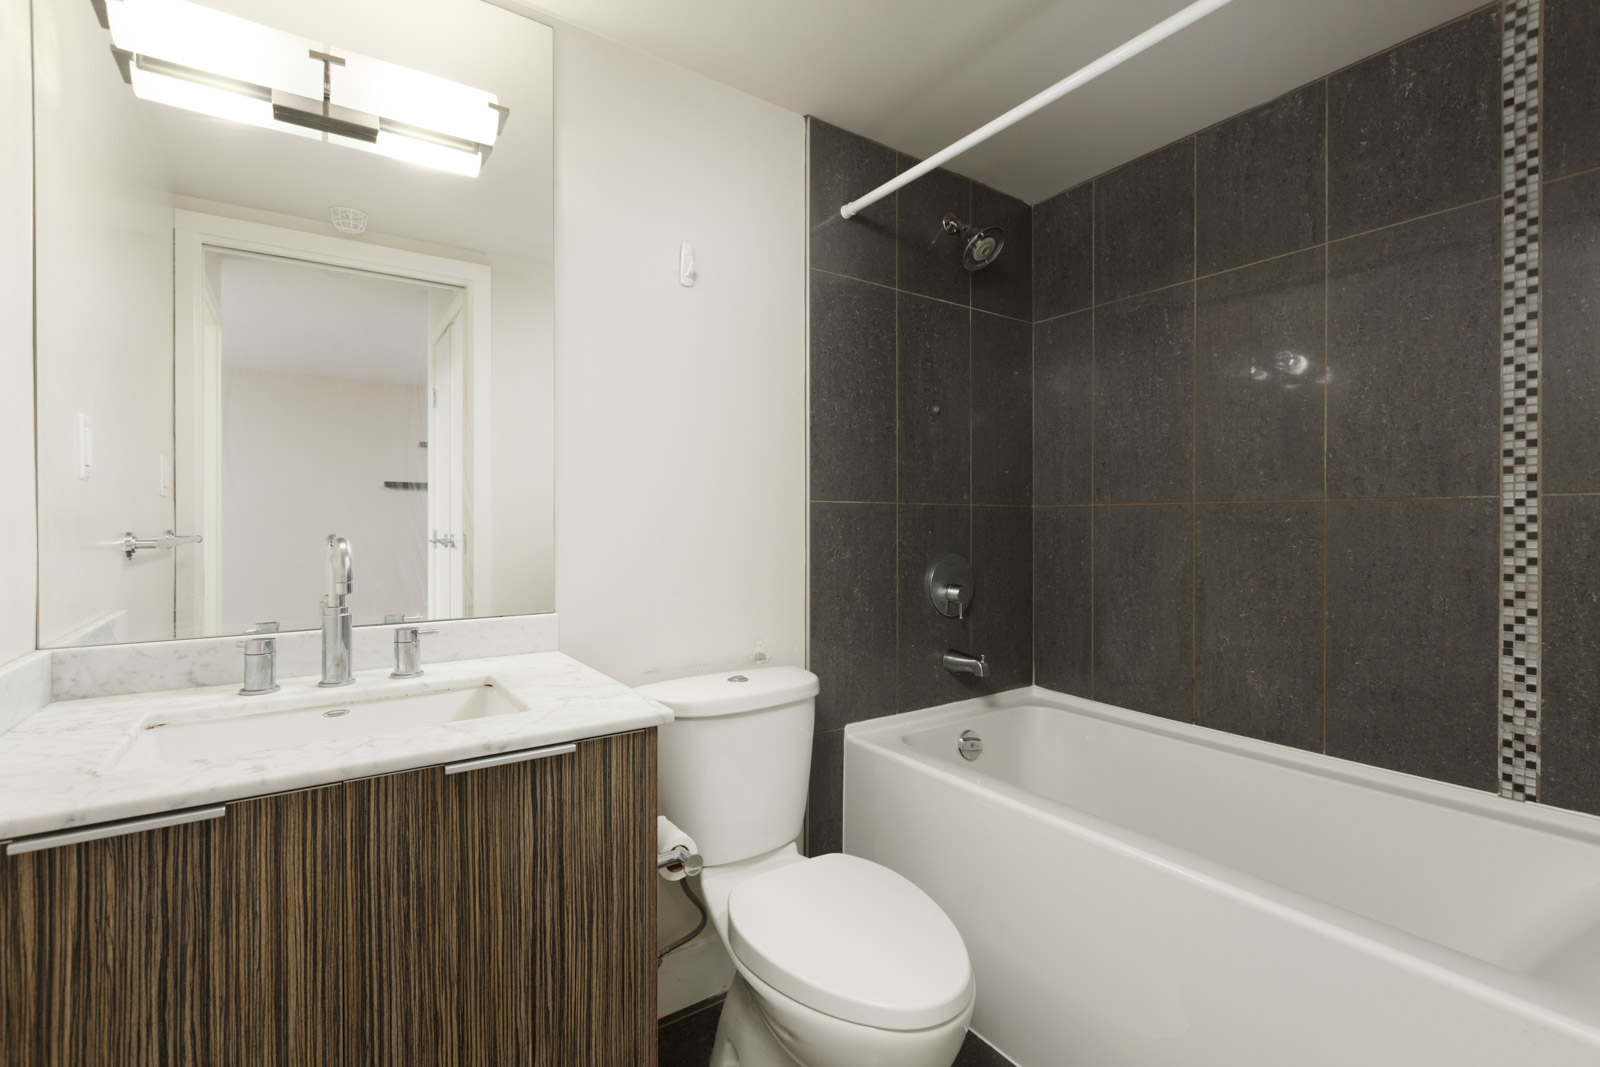 condo bathroom with white bathtub on right and vanity on left and toilet in middle